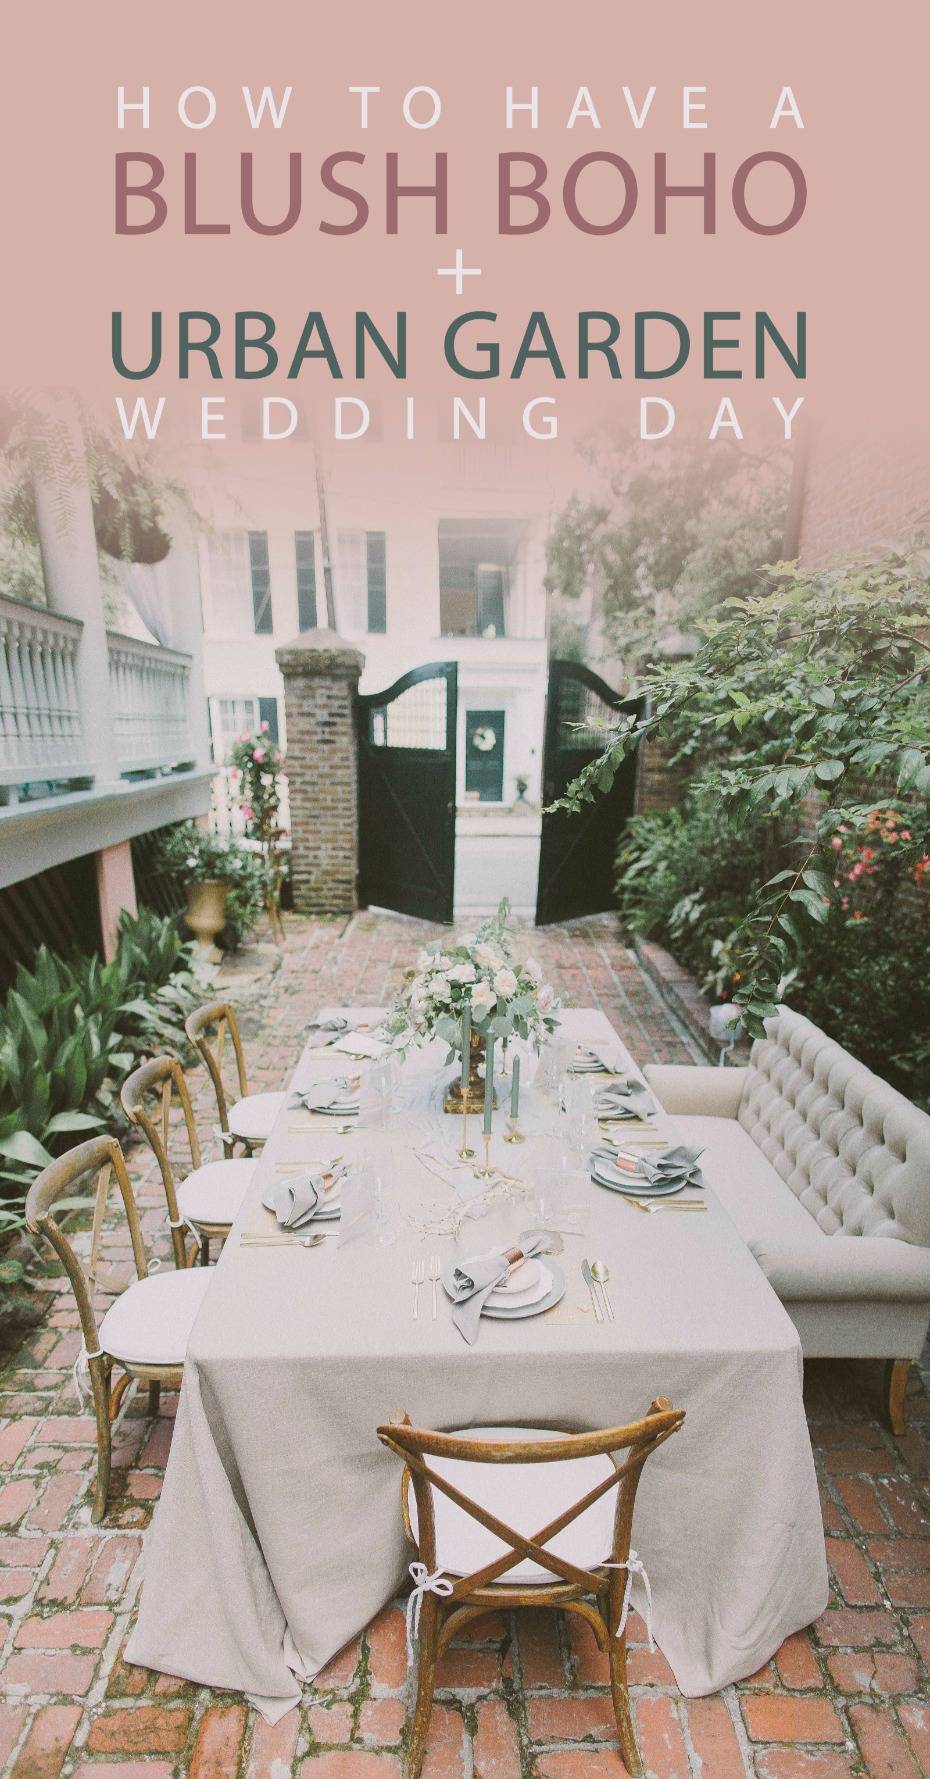 how to have a blush boho urban garden wedding day